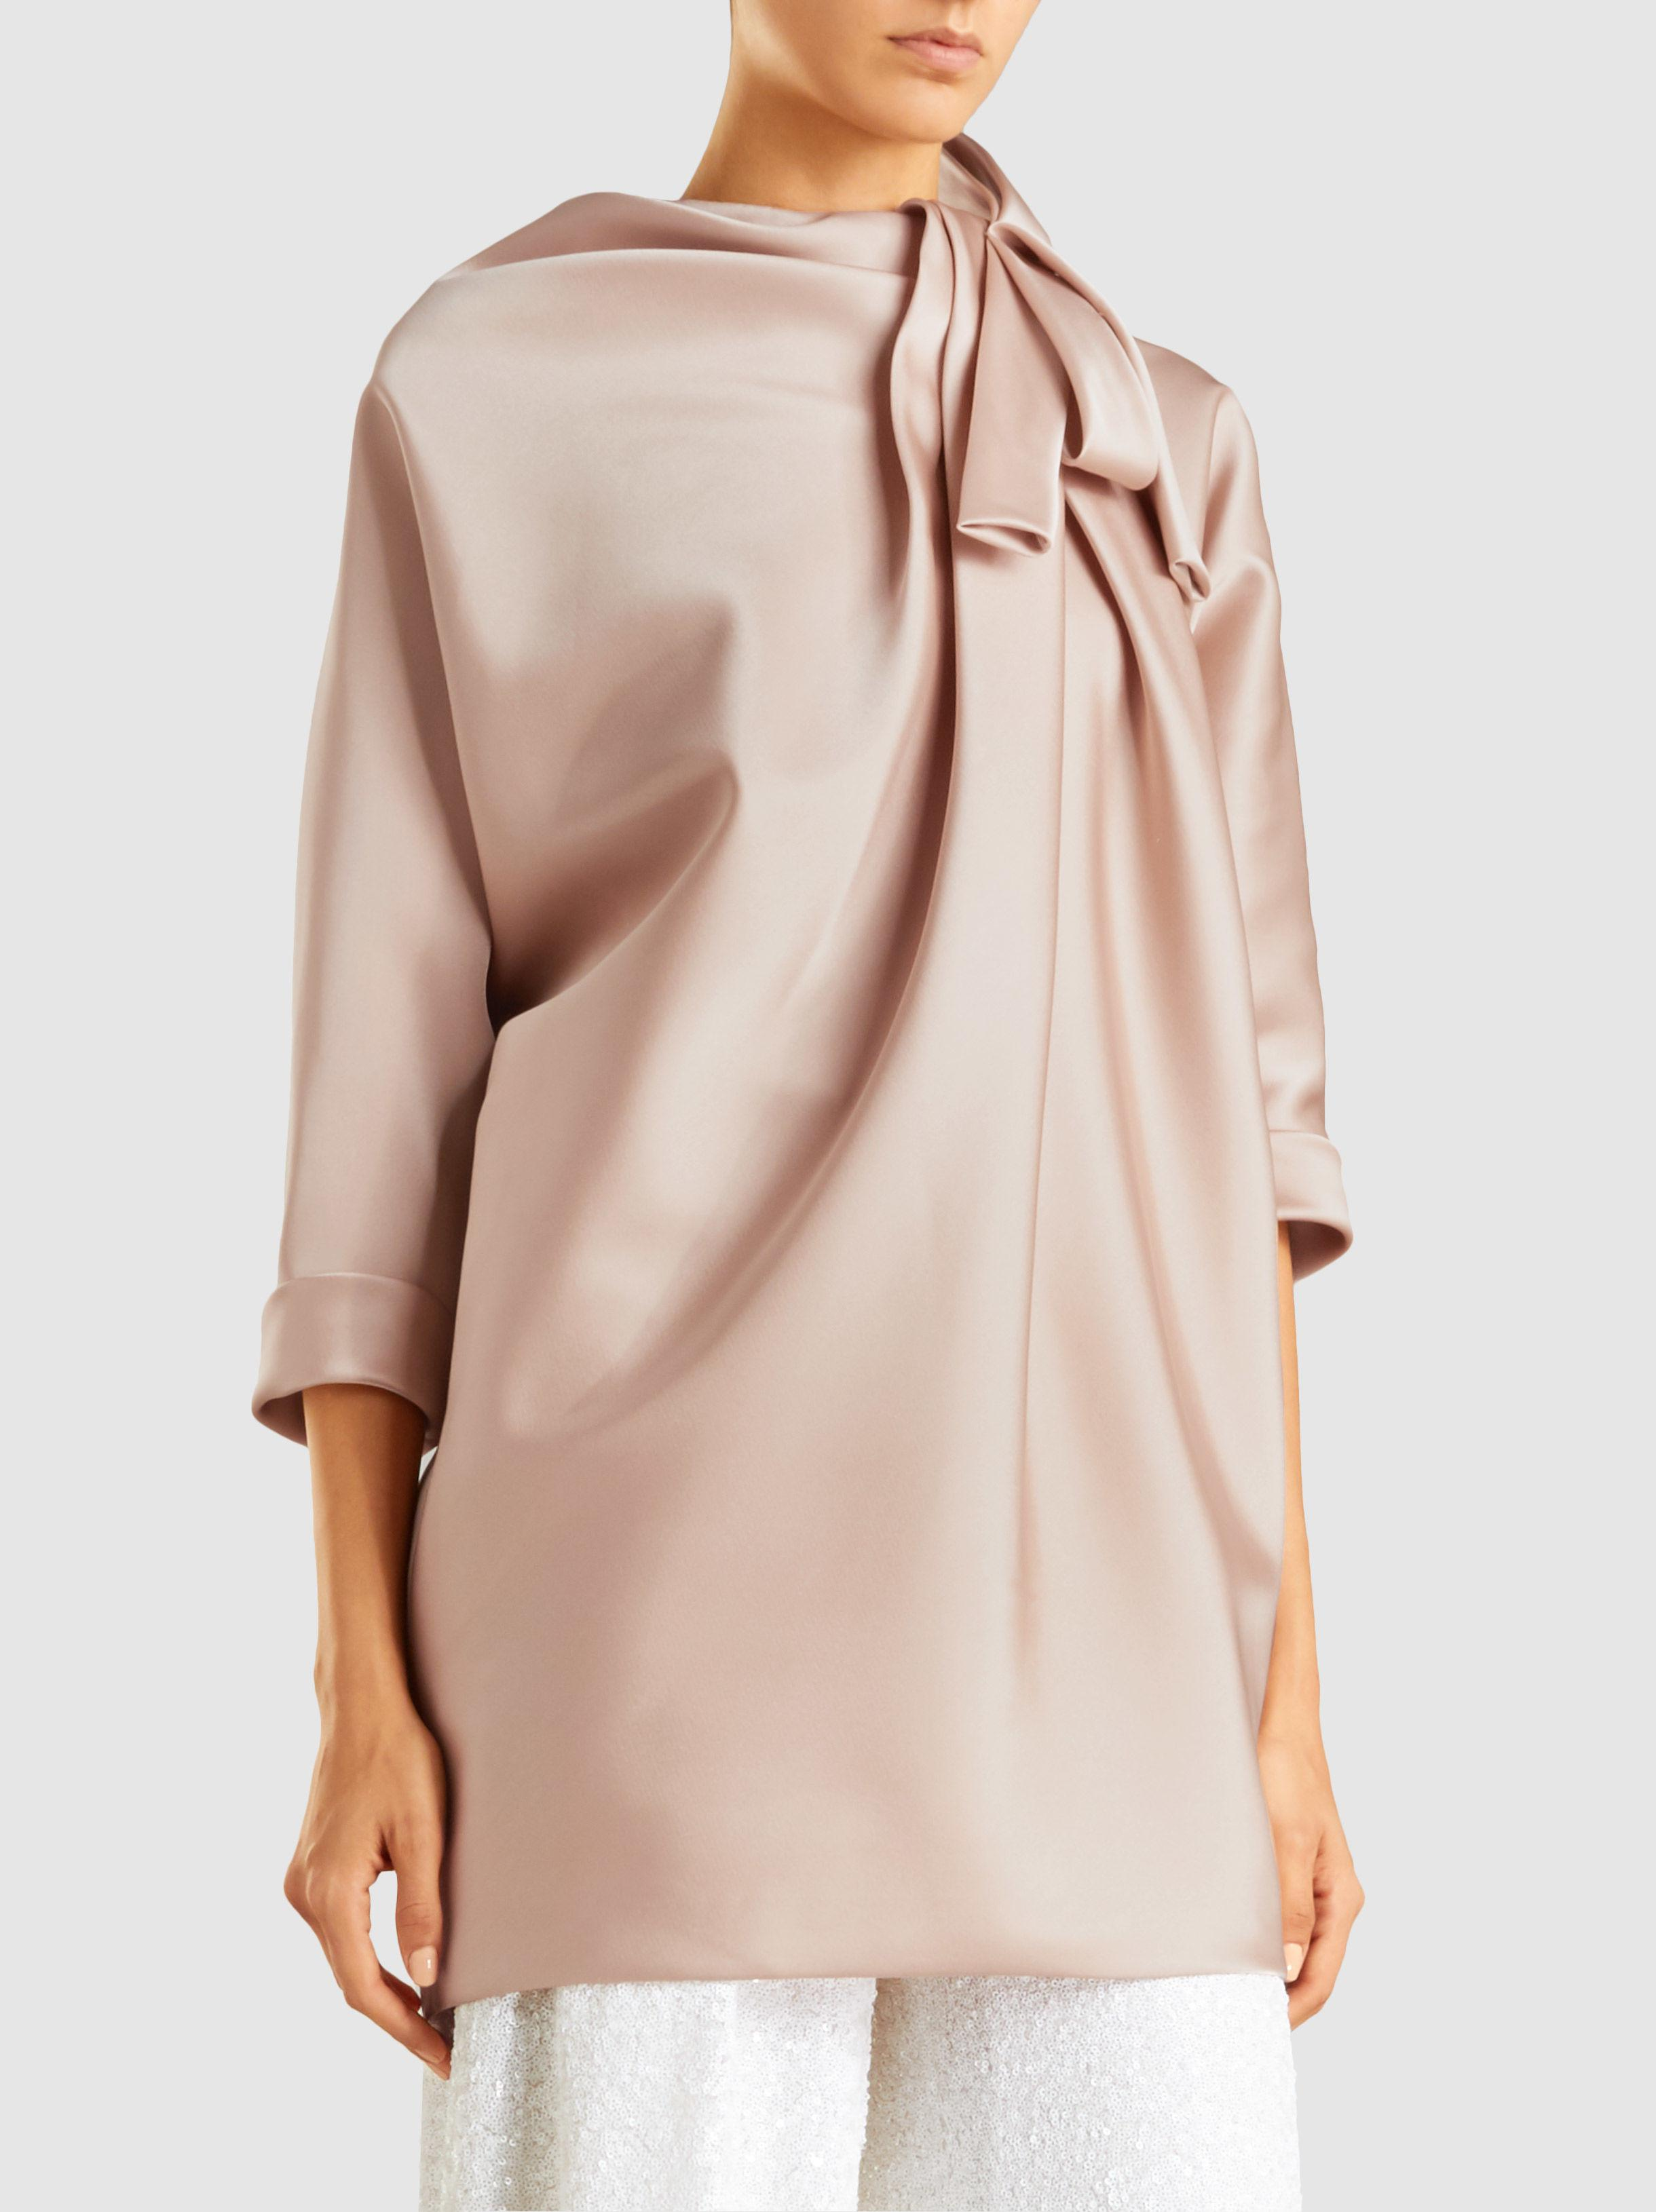 Dolman Sleeve Tunic With Bow Detail Marc Jacobs